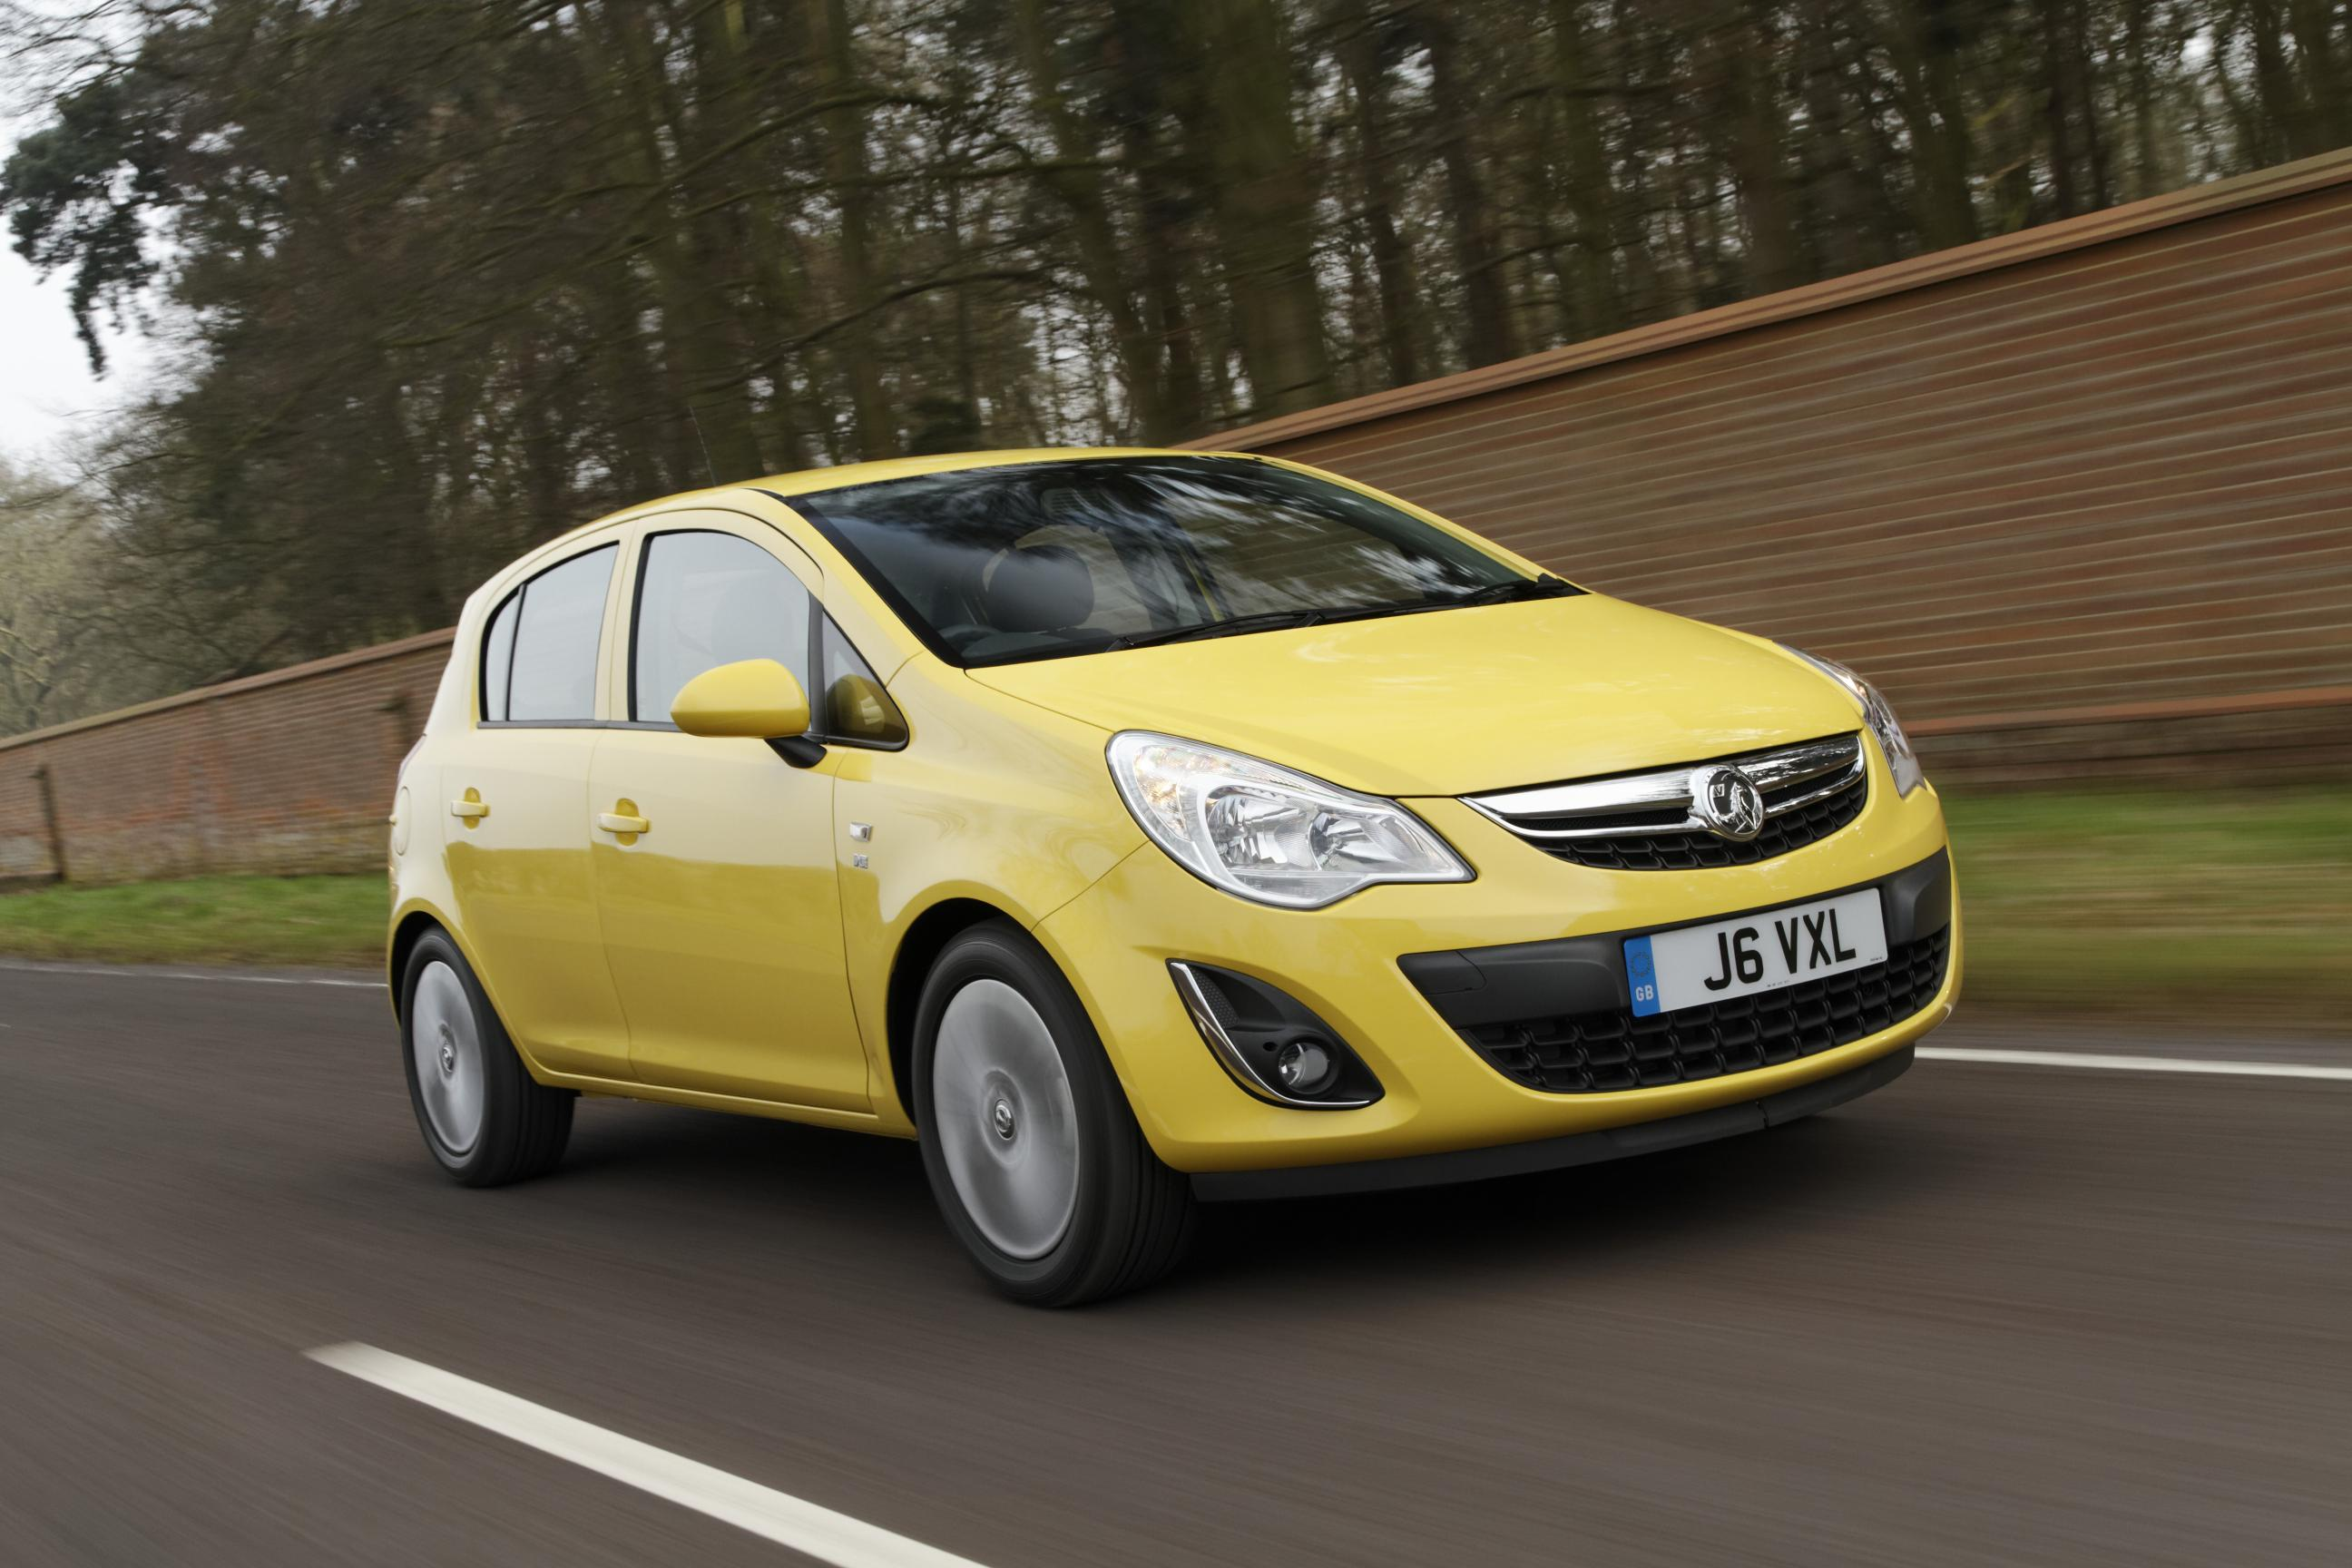 Vauxhall Corsa front view yellow